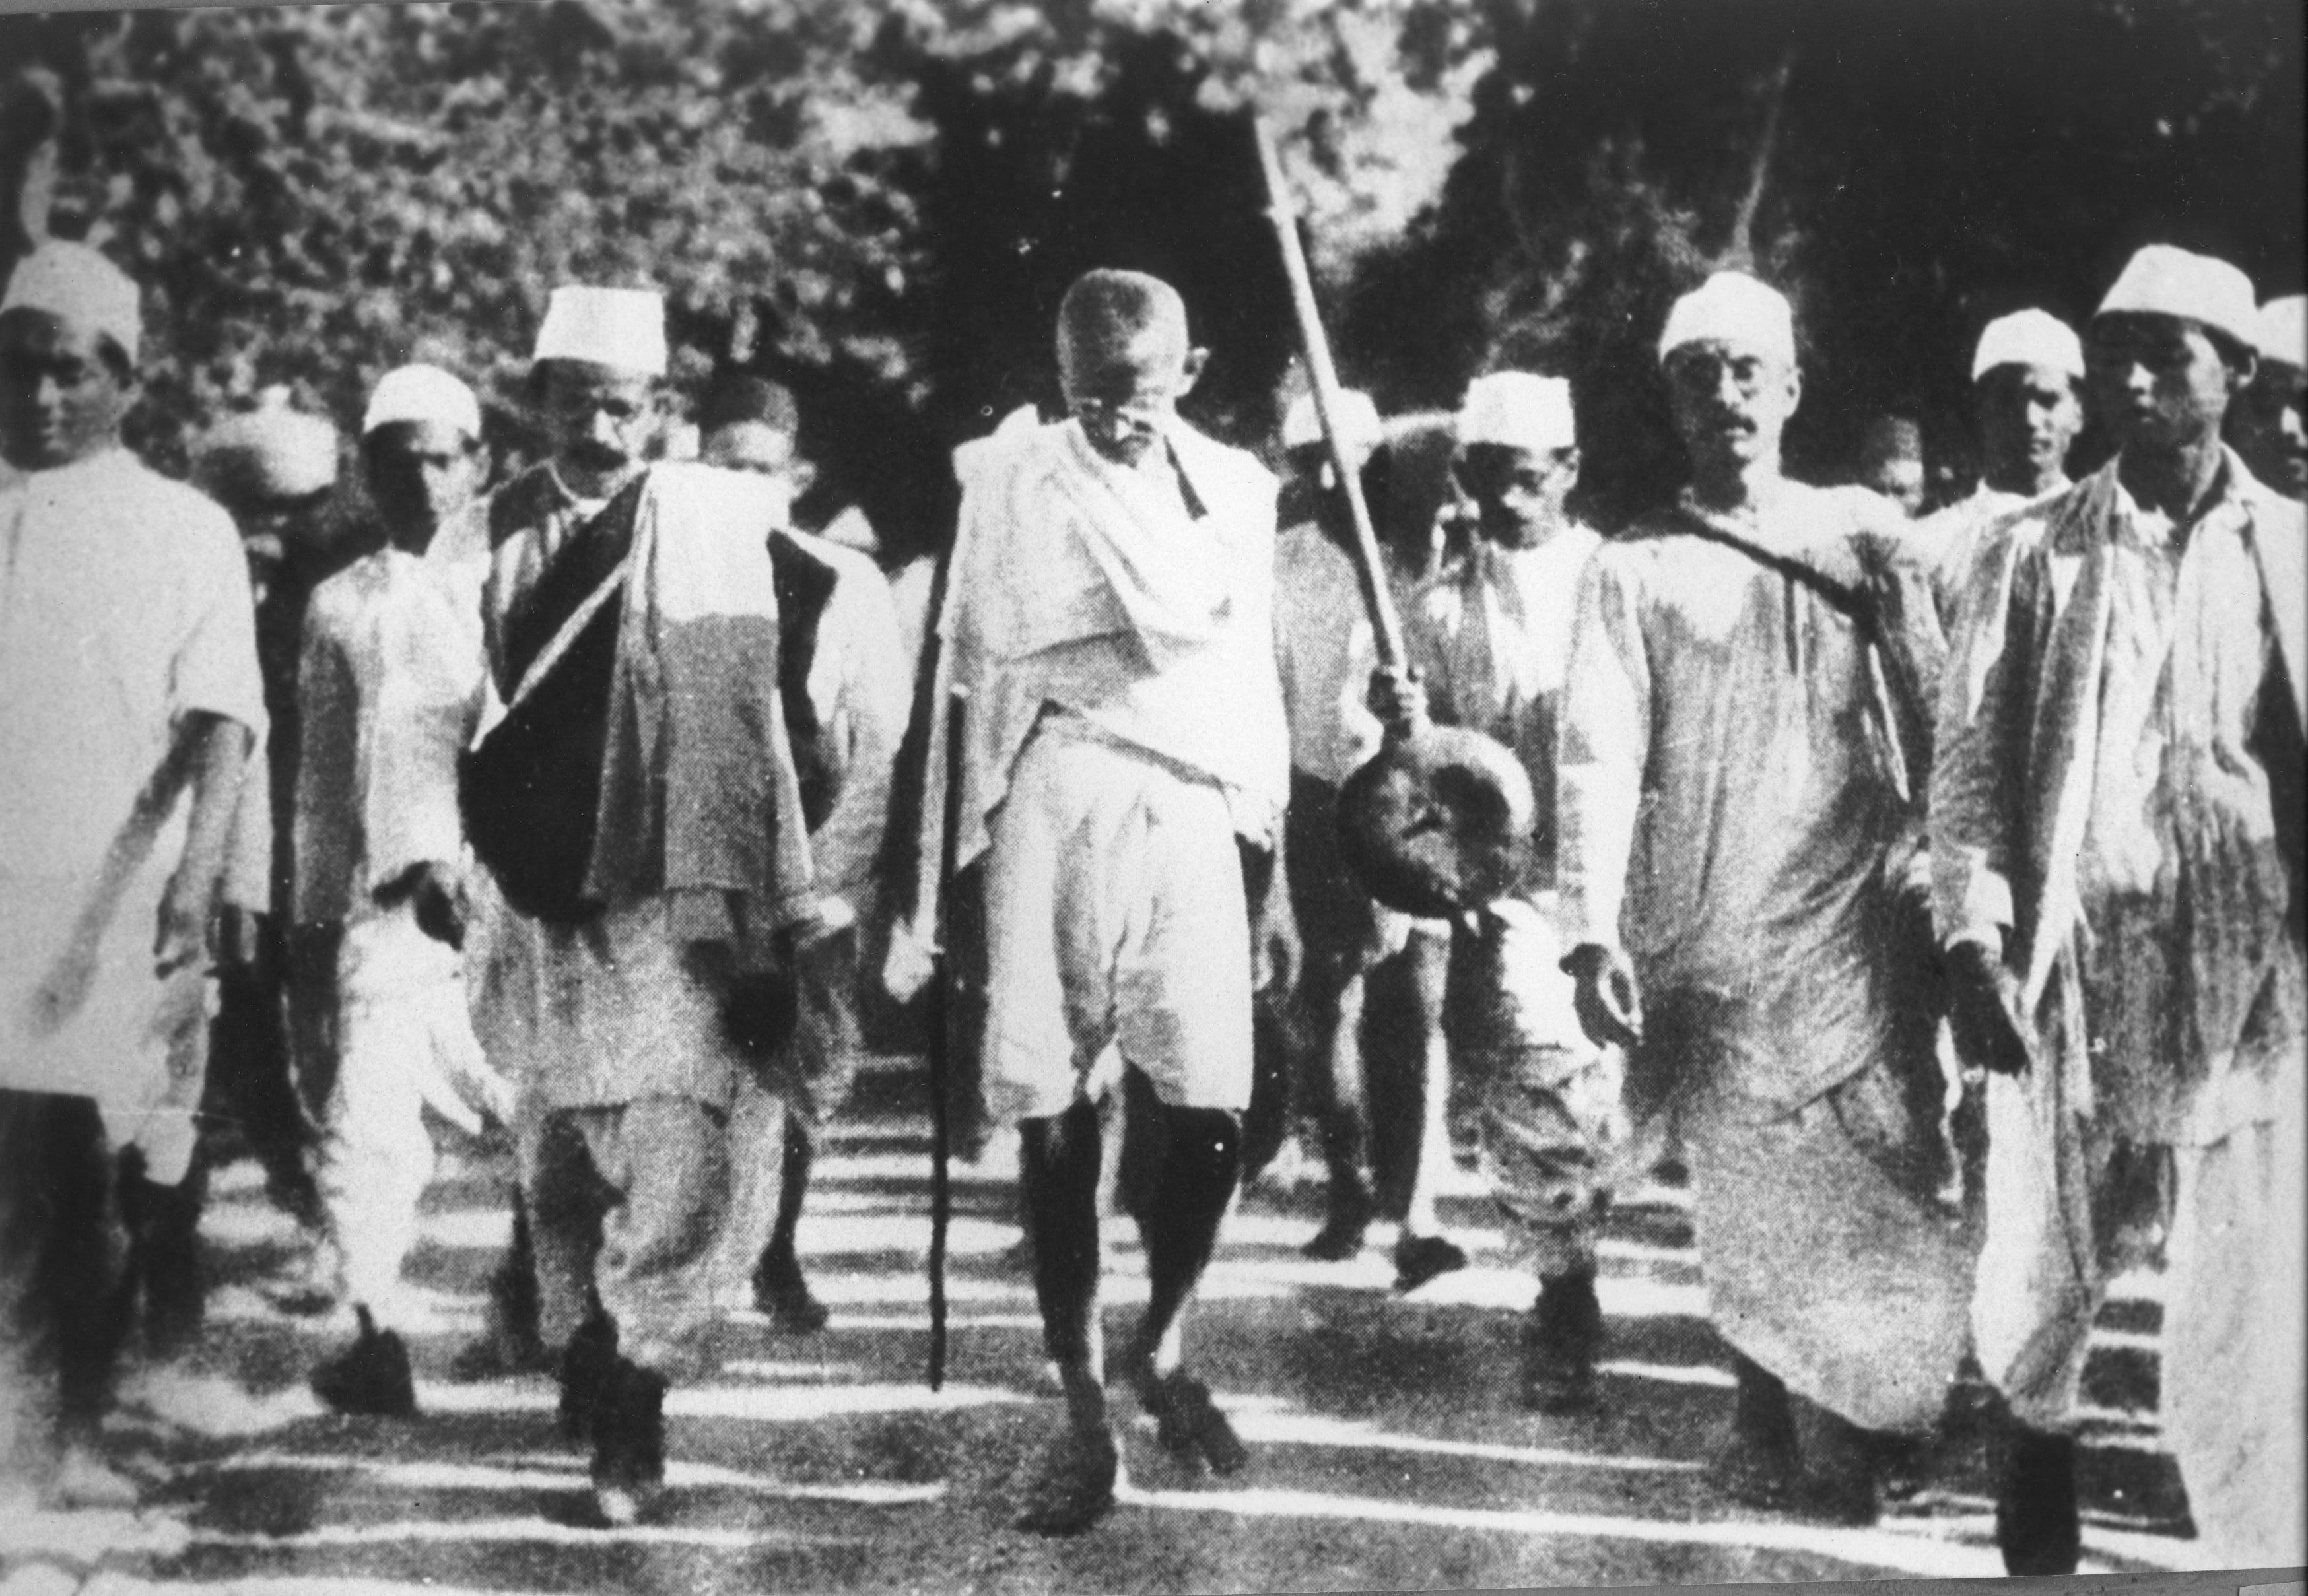 Gandhi leading the 1930 salt march. Credit: Wikimedia Commons